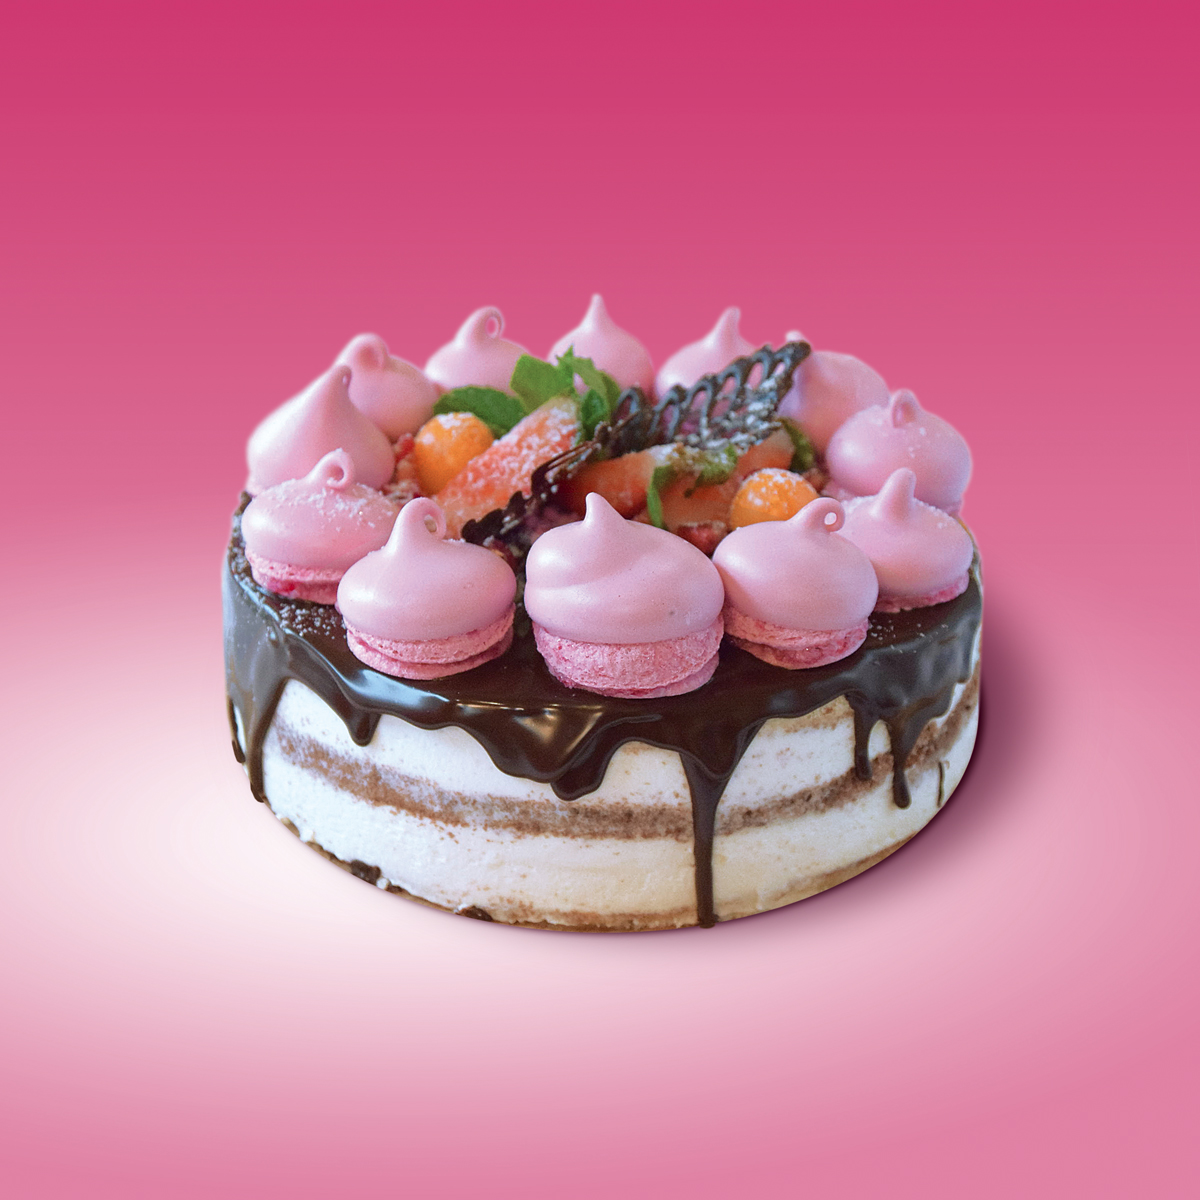 Images Of 2 Kg Cake : Strawberry-cream cheese cake 1,2 kg Cafe Boulevard